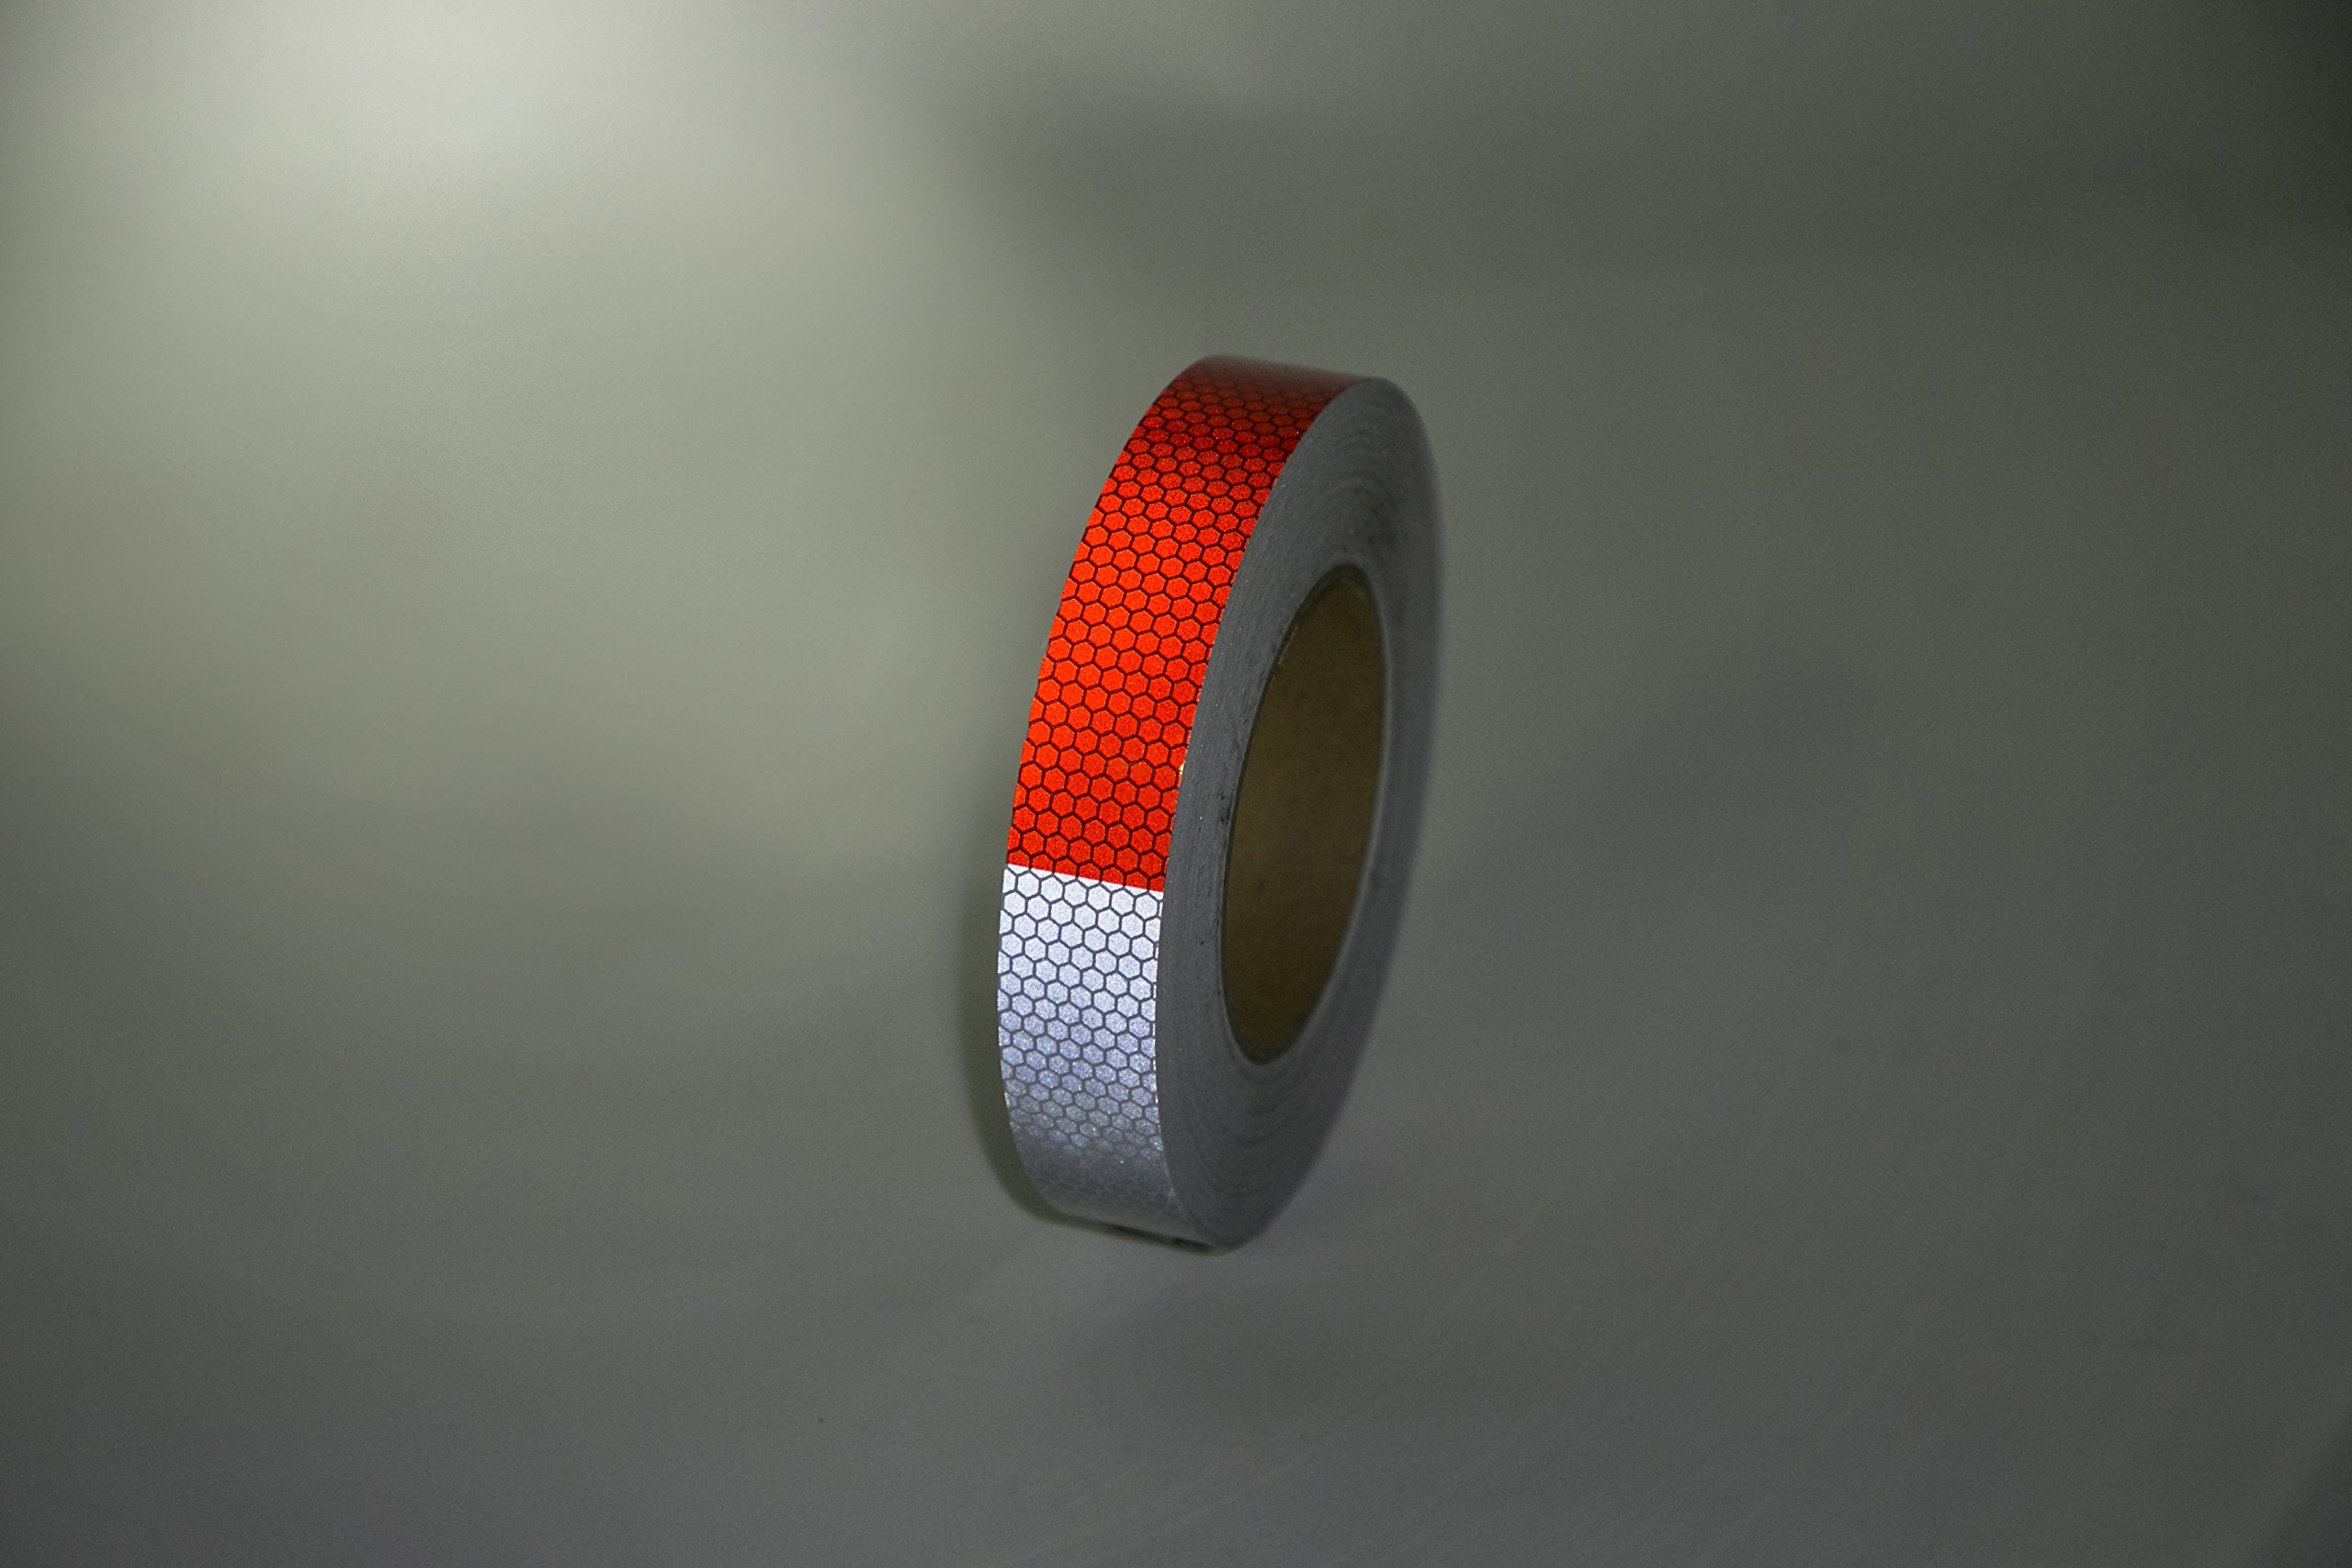 Starrey Reflective Tape 1''X25' DOT-C2 High Intensity Grade Red White - 1 inch Waterproof Trailer Reflector Conspicuity Safety Tape for Vehicles Trucks Cars